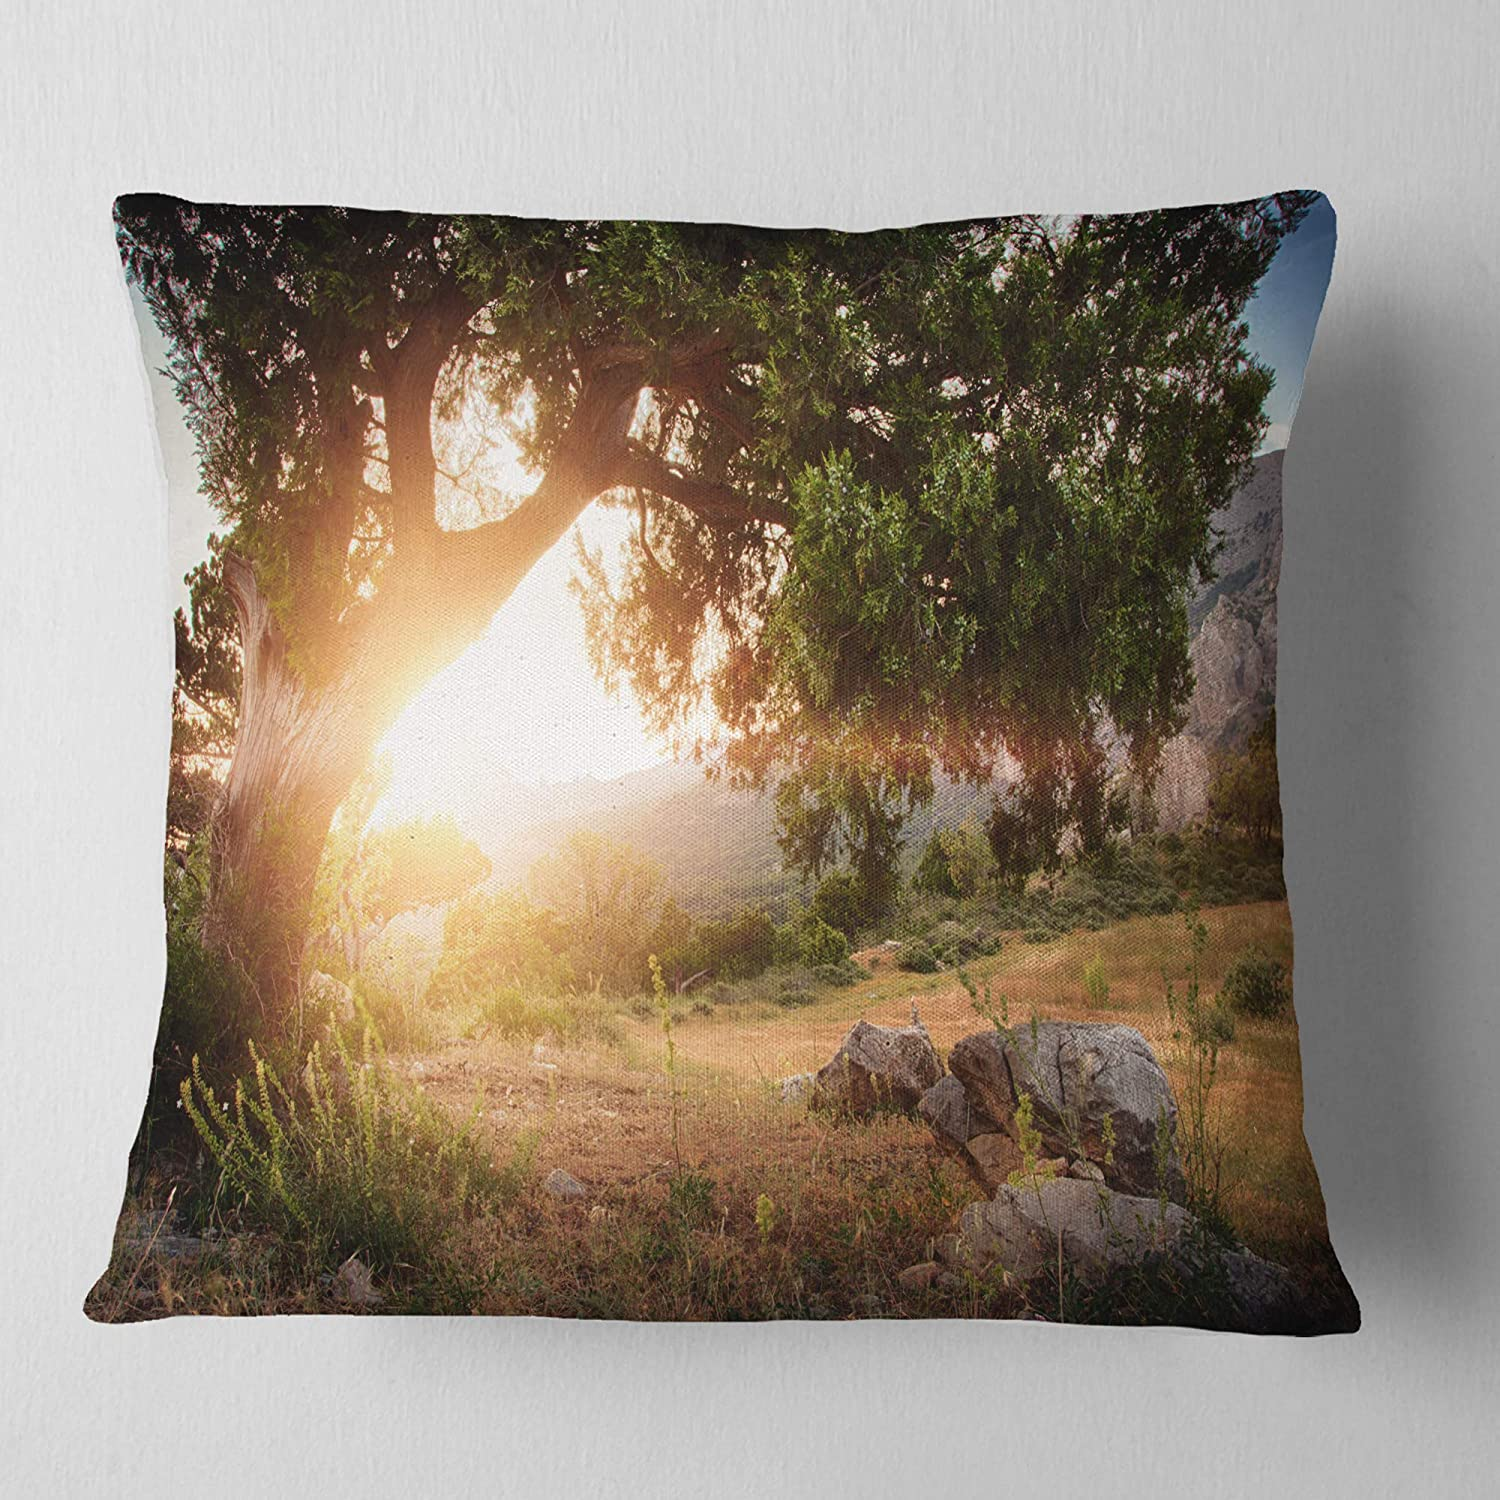 x 26 in Sofa Throw Pillow 26 in Designart CU16432-26-26 Picturesque Foros Mountains Abstract Cushion Cover for Living Room